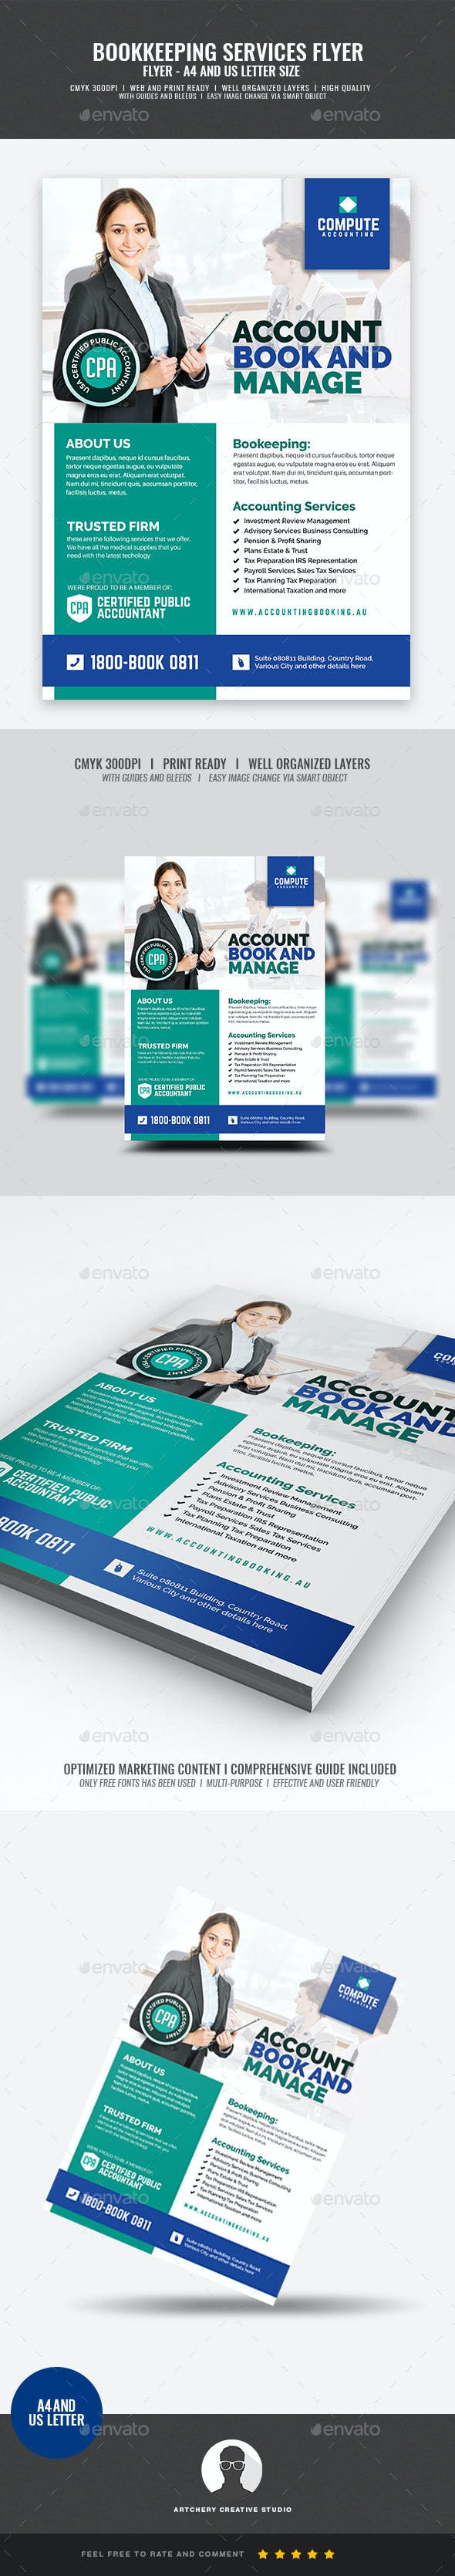 accounting and bookkeeping services flyer corporate flyers